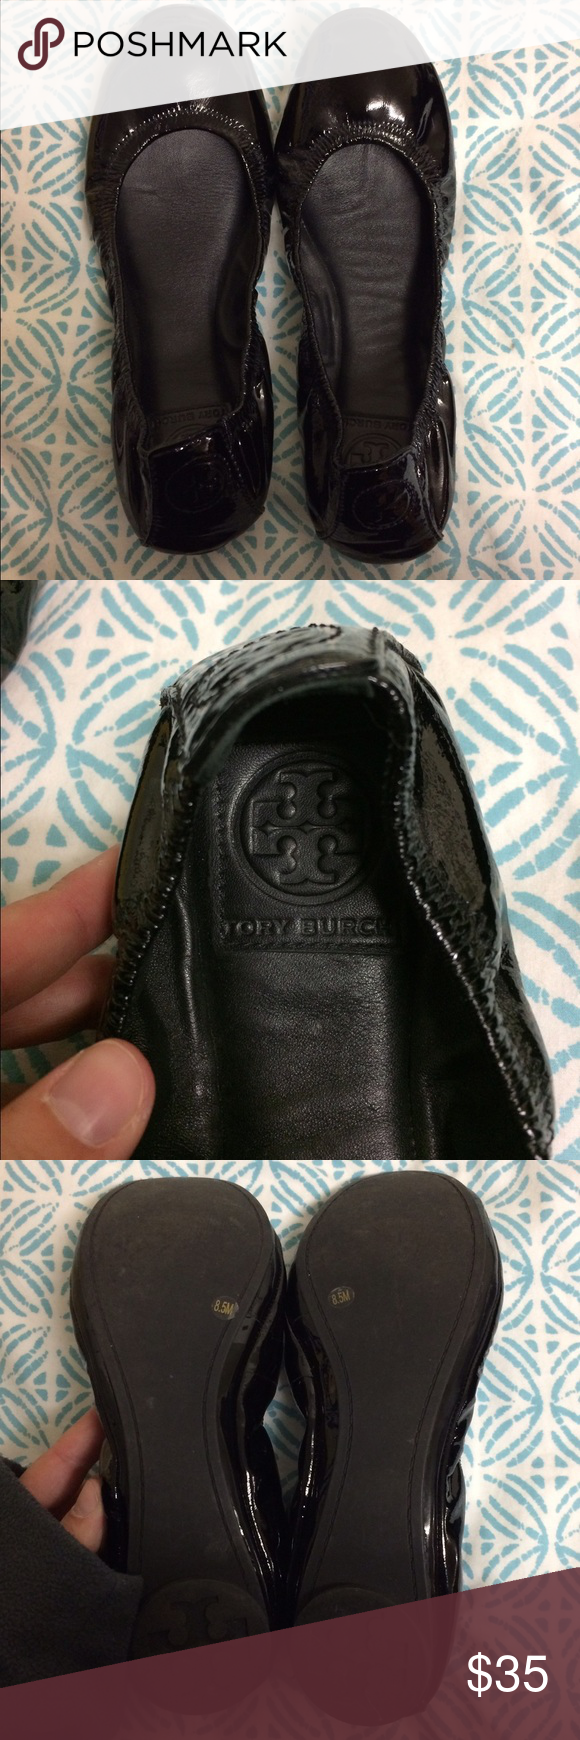 Tory Burch Flats Hardly worn, still perfect condition! Just don't wear enough. Extremely soft and comfortable. Tory Burch Shoes Flats & Loafers